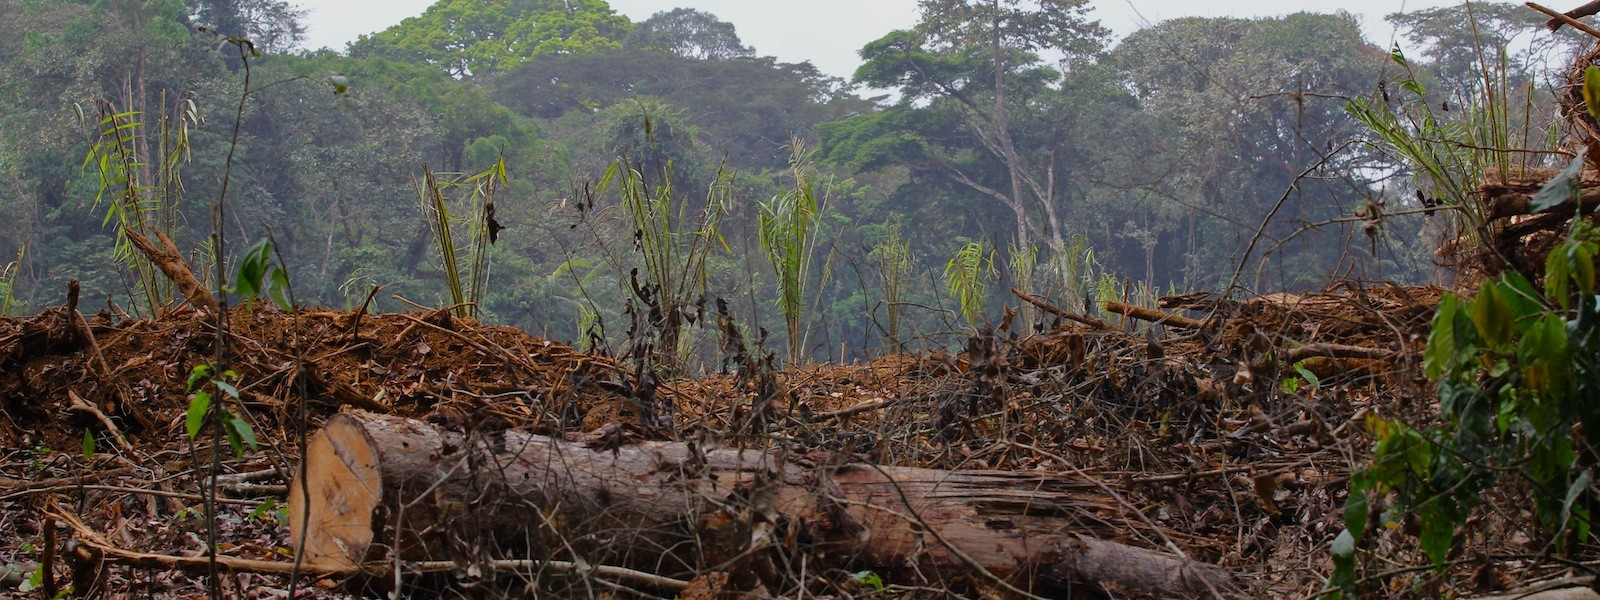 West Africa deforestation